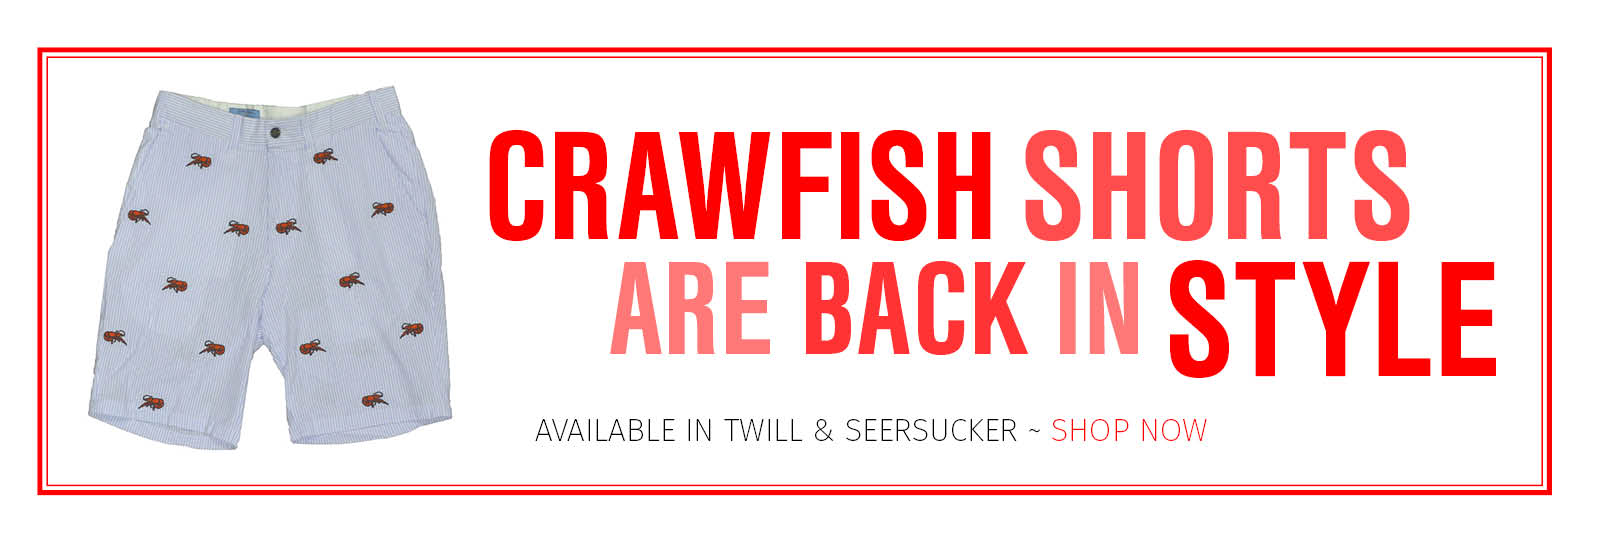 Crawfish Shorts are Back in Style!